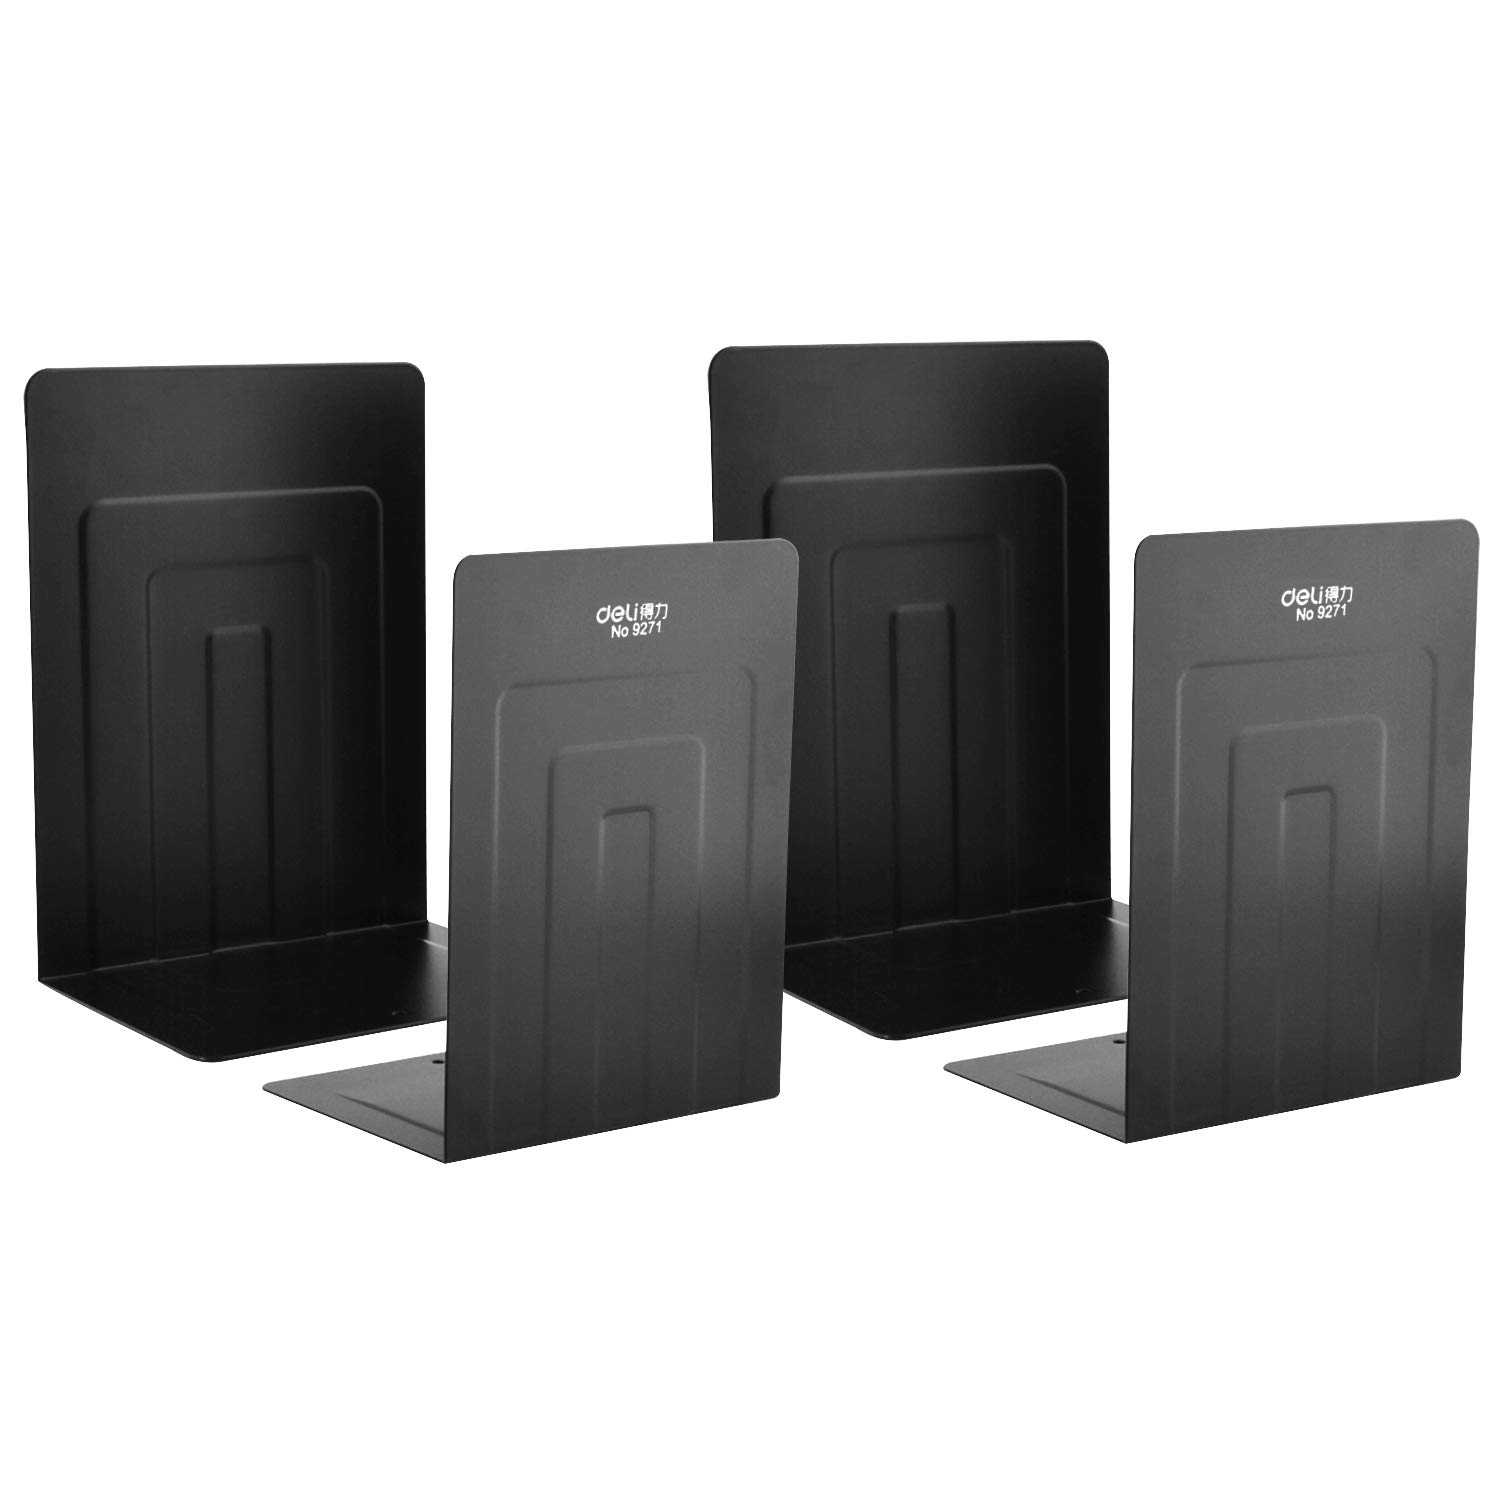 MaxGear Bookends Book Ends Universal Economy Bookends Premium Bookends Nonskid Heavy Duty Metal Bookend Supports for Books Notebooks Files Magazines Cookbooks 5.2 x 4 x 7 inch Black 2 Pair/4 Piece by MaxGear